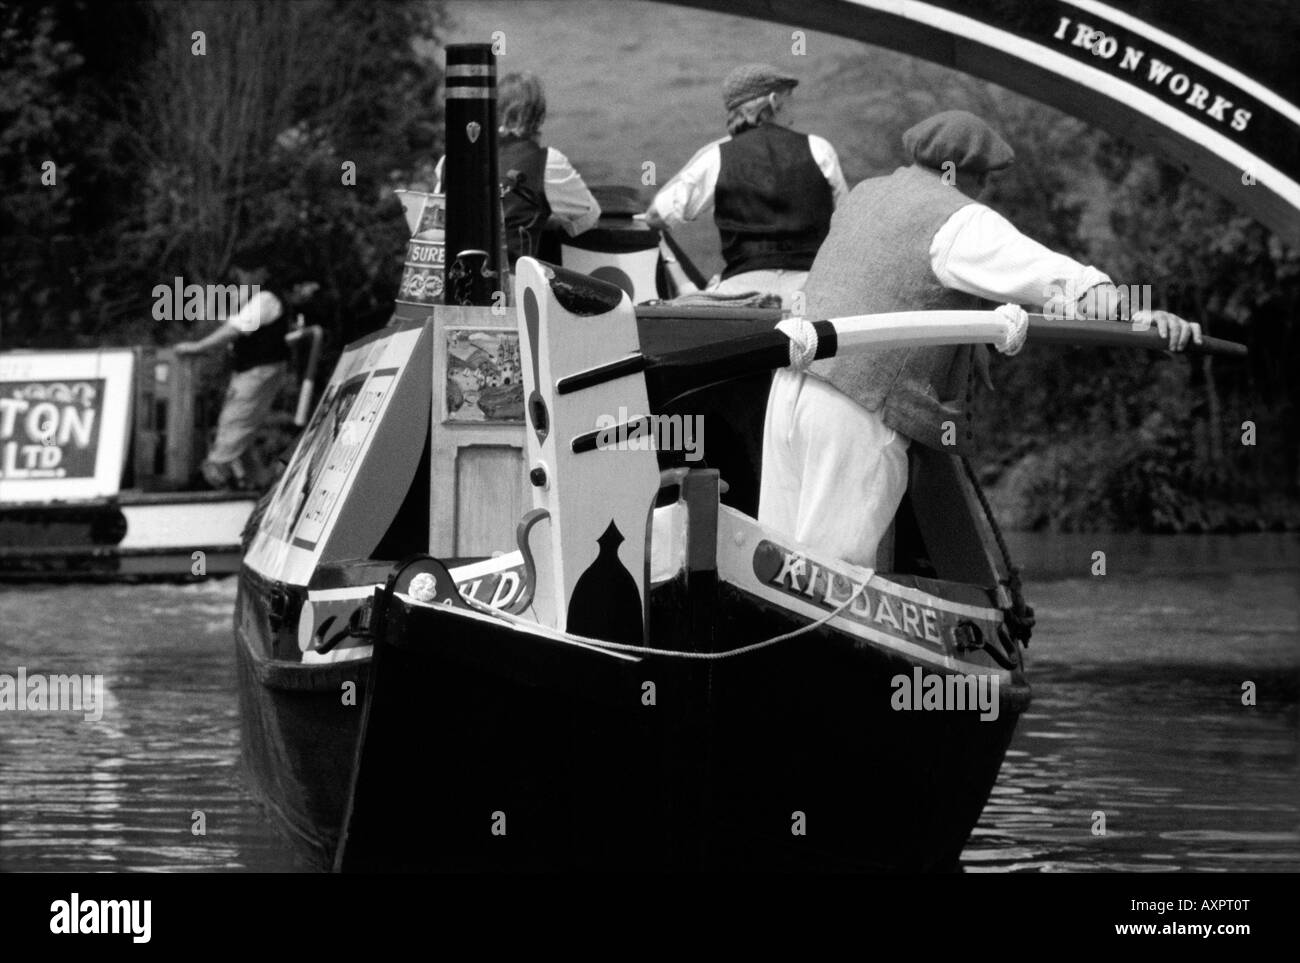 PICTURE CREDIT Doug Blane Narrowboat on the canal Stock Photo